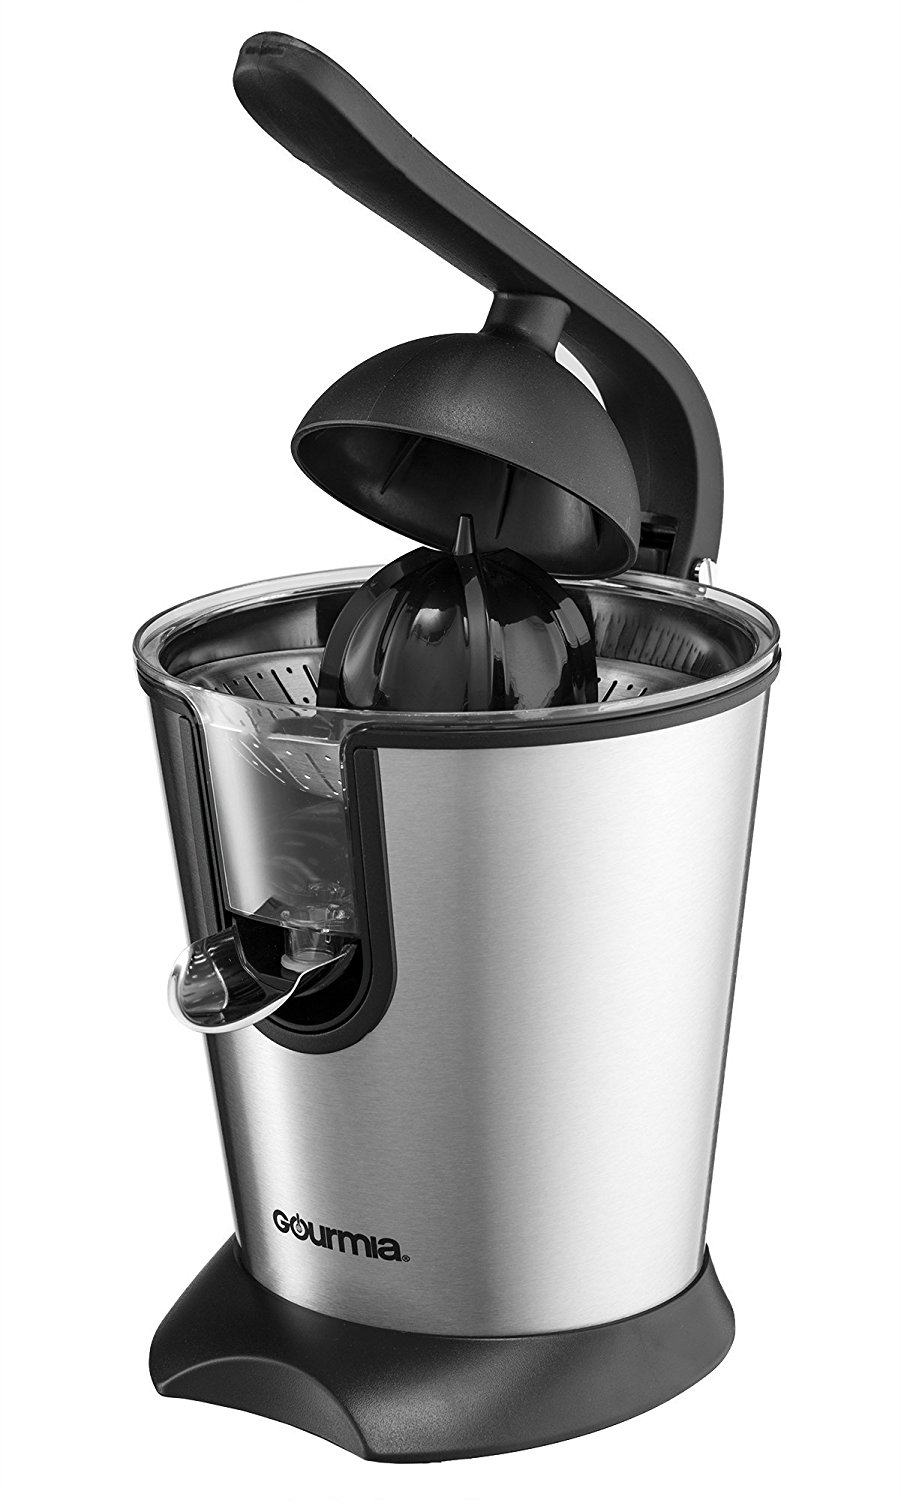 Best Citrus Juicer Reviews: Buying Guide And Top 5 Reviews